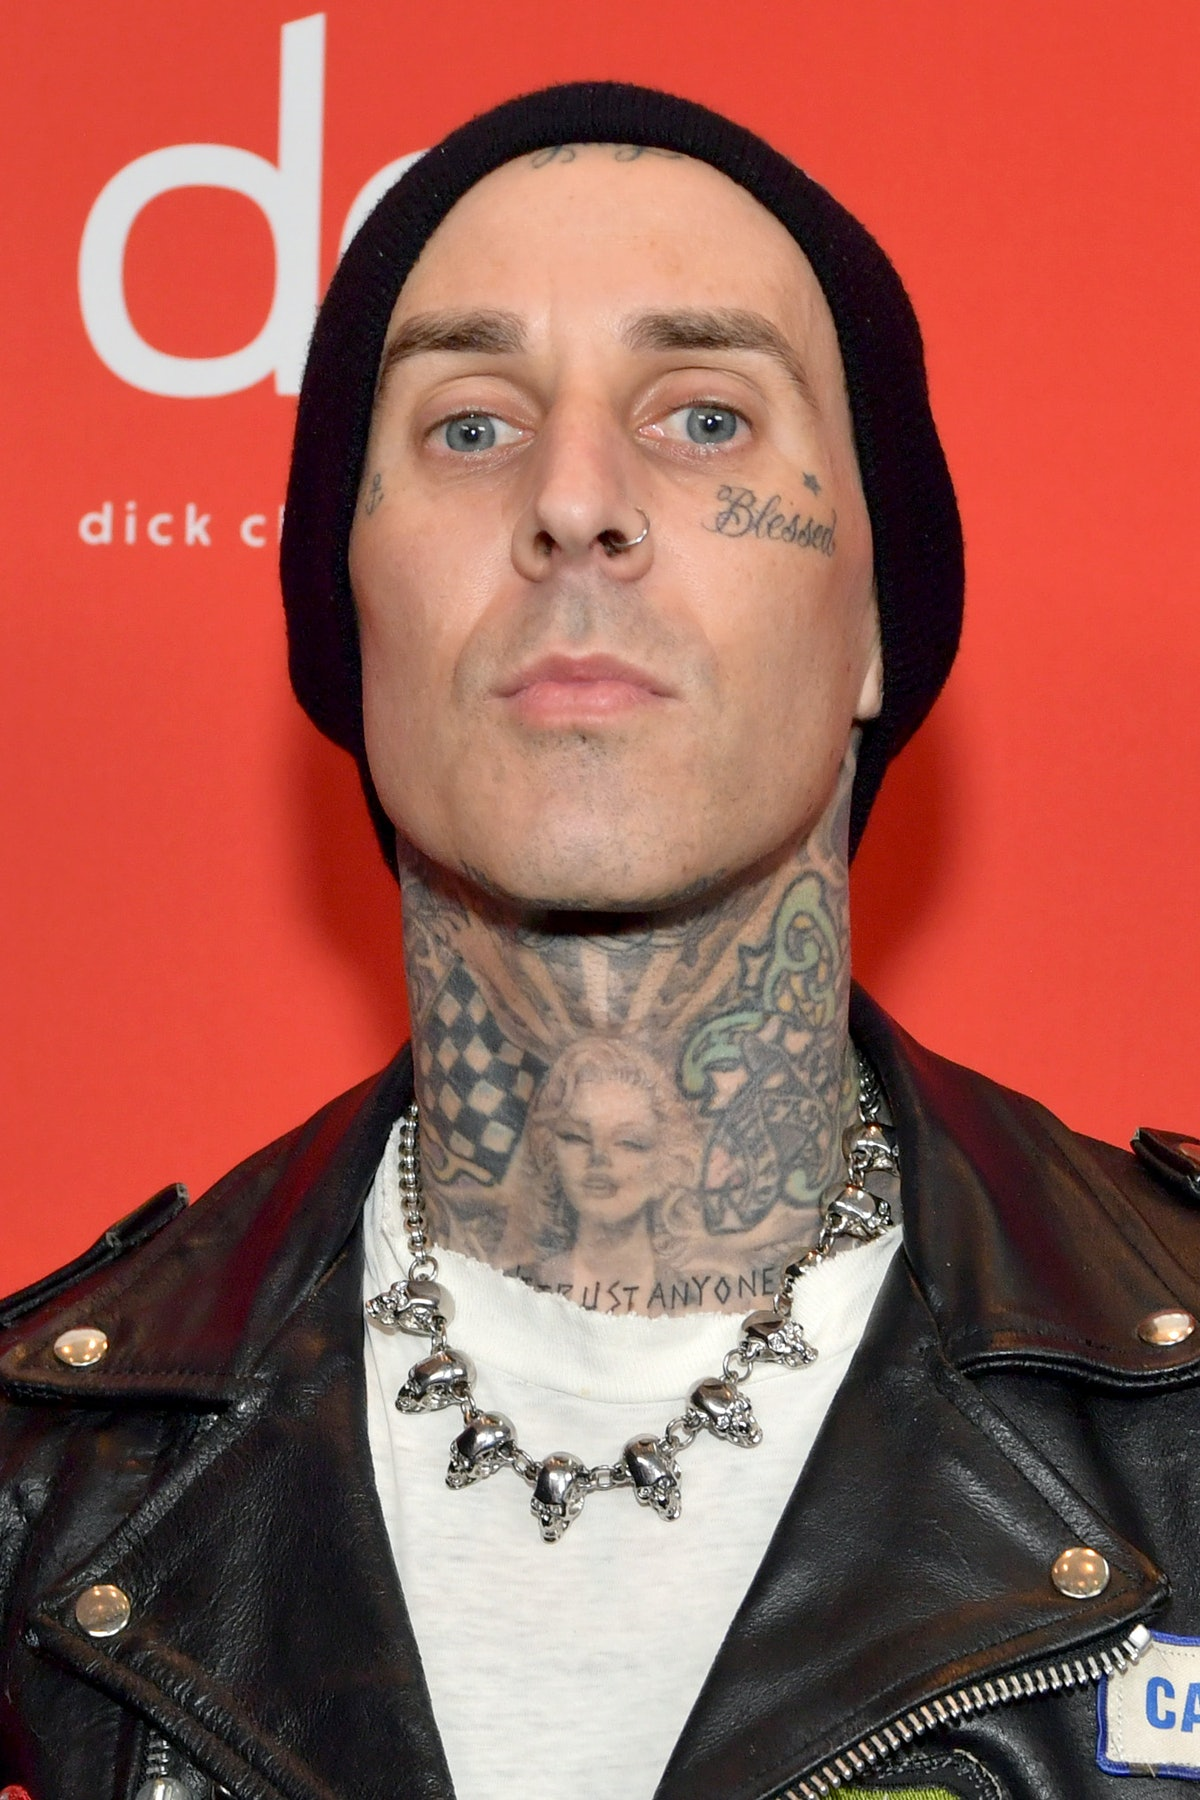 LOS ANGELES, CALIFORNIA - NOVEMBER 22: In this image released on November 22, Travis Barker attends the 2020 American Music Awards at Microsoft Theater on November 22, 2020 in Los Angeles, California. (Photo by Emma McIntyre /AMA2020/Getty Images for dcp)